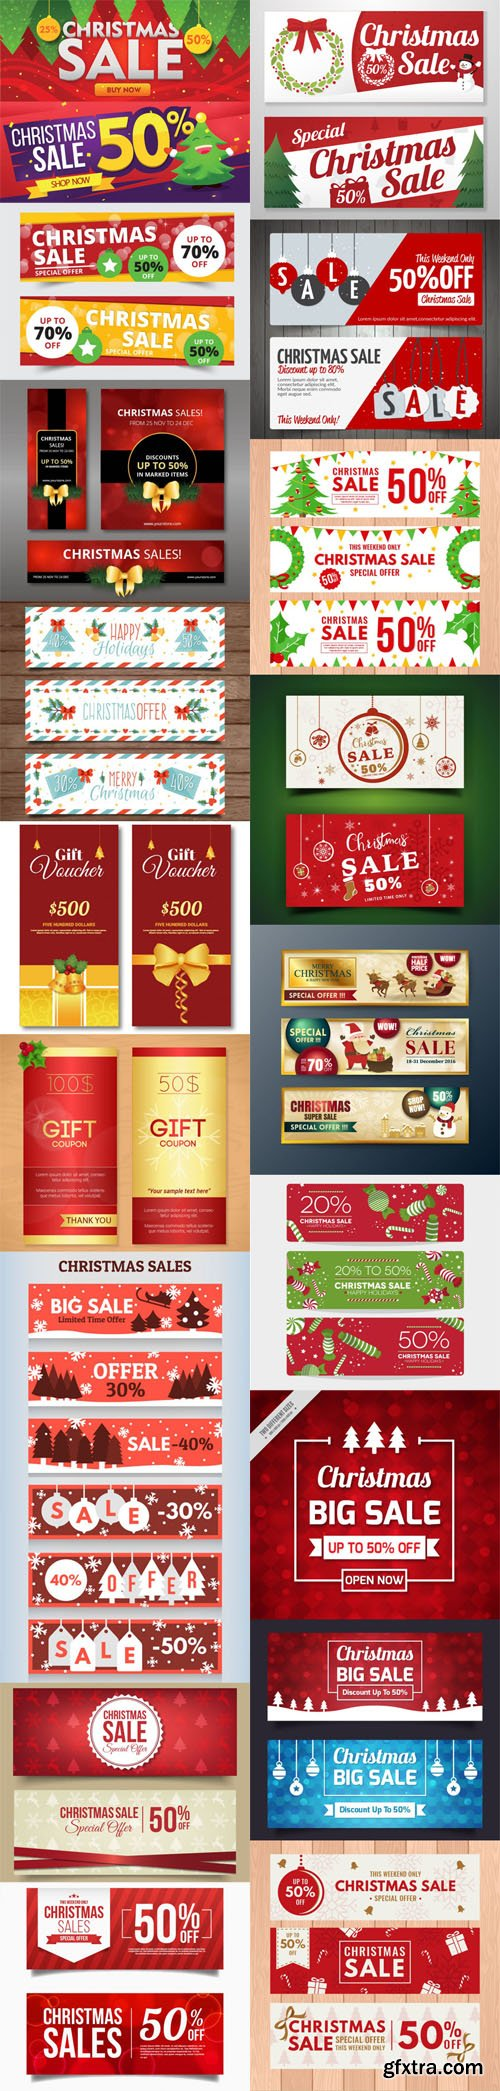 Holiday & Christmas Sales Vector Bundle 5